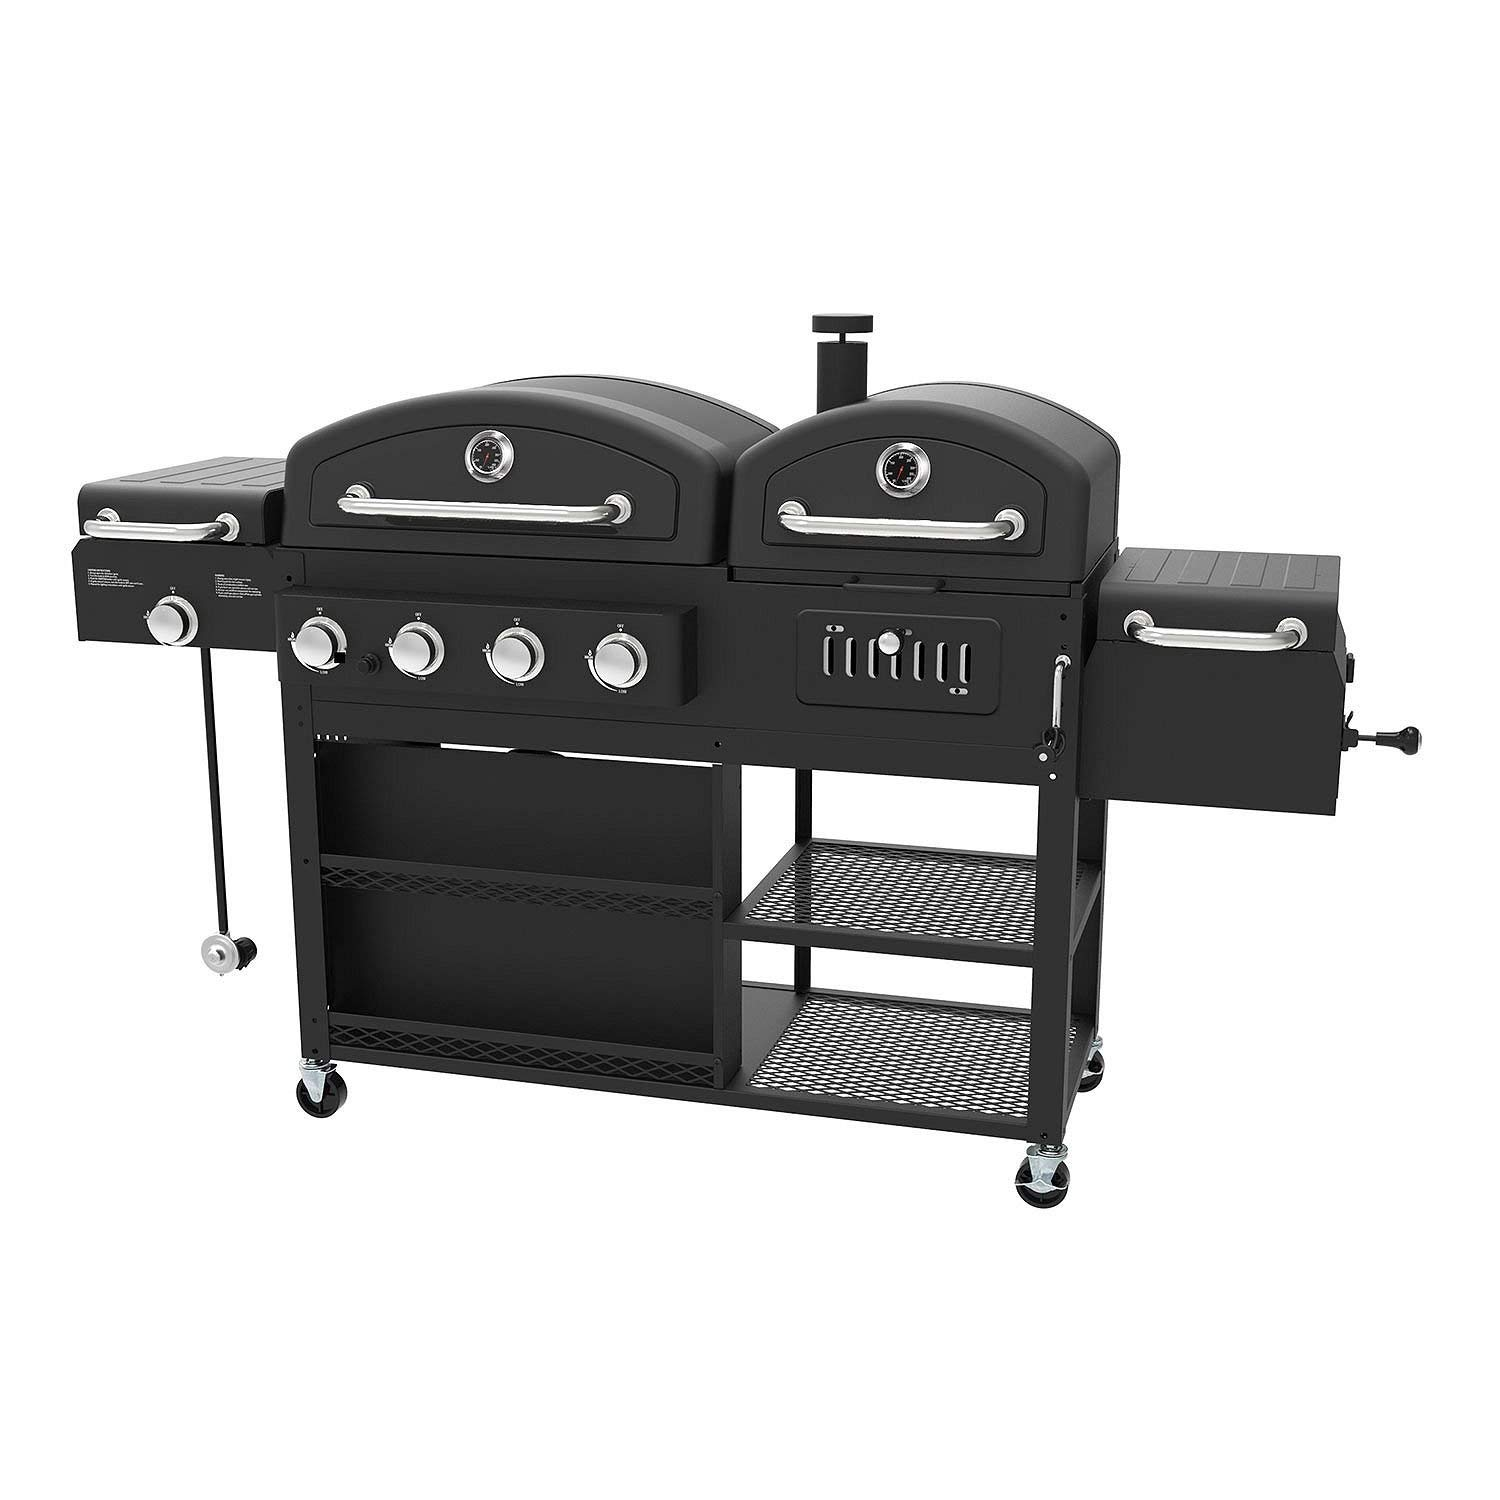 Smoke Hollow Ps9900 4 In 1 Lp Gas Charcoal Grill And Smoker Review